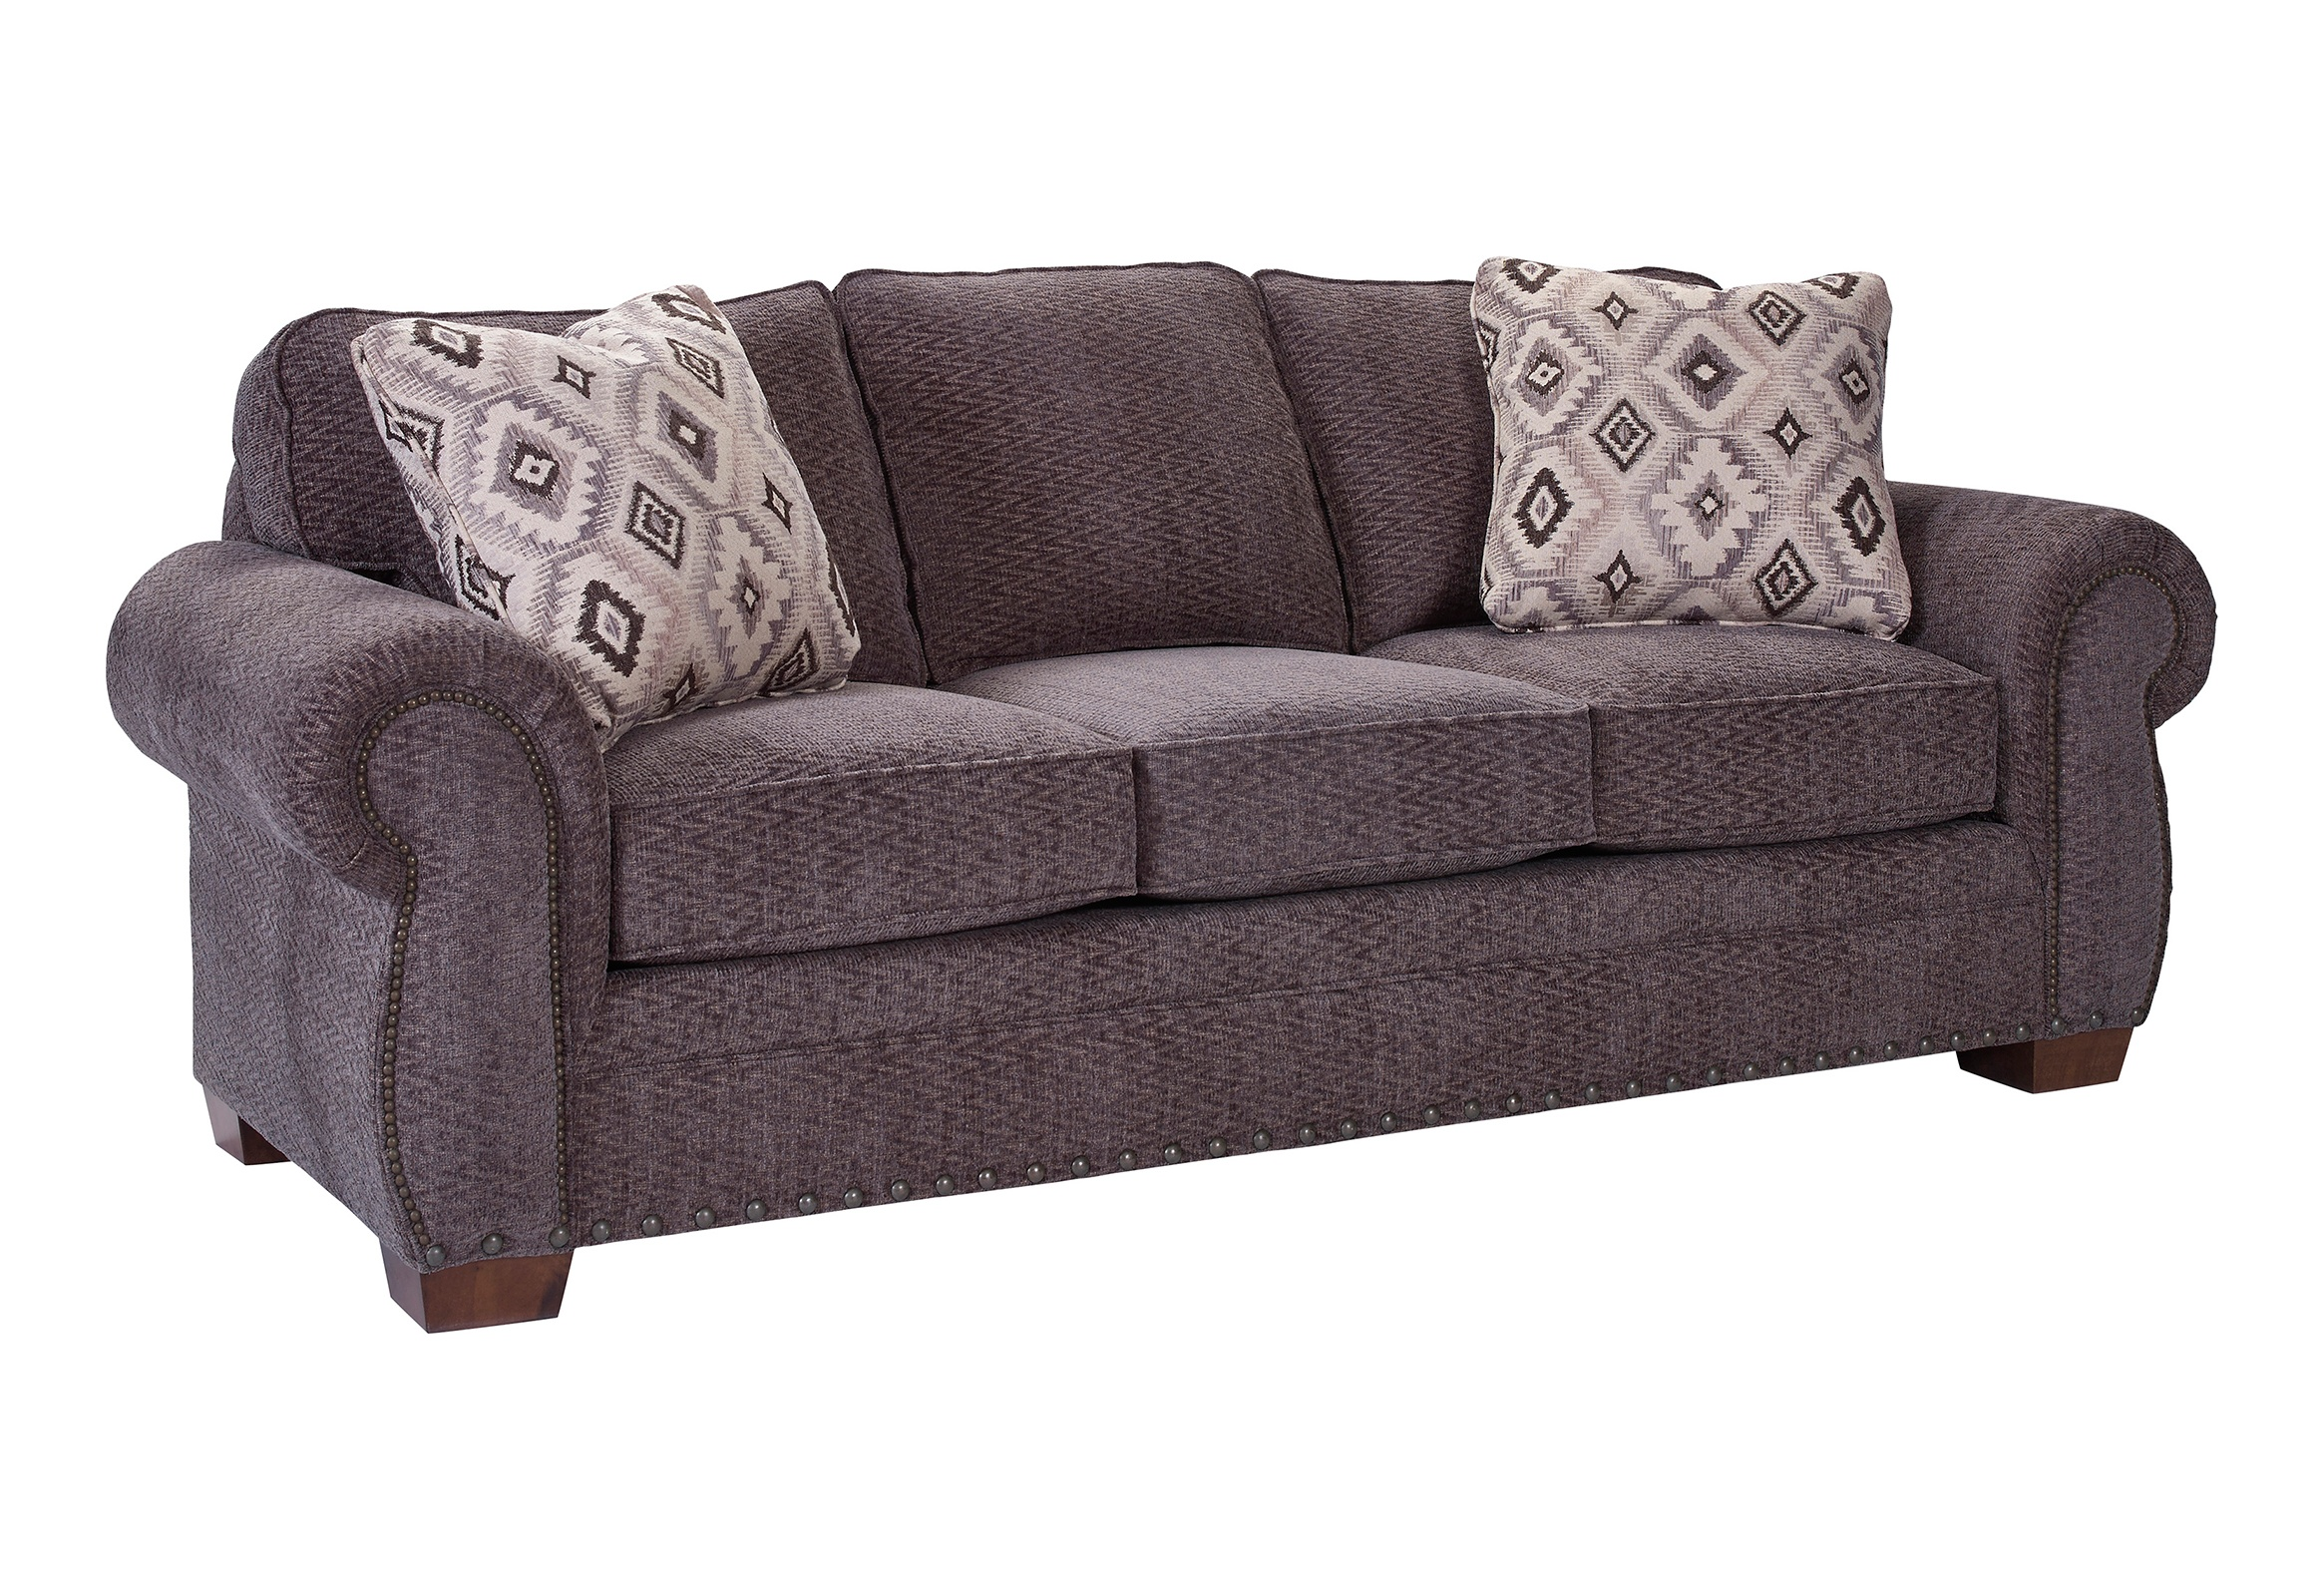 Cambridge 5054 Sofa Collection